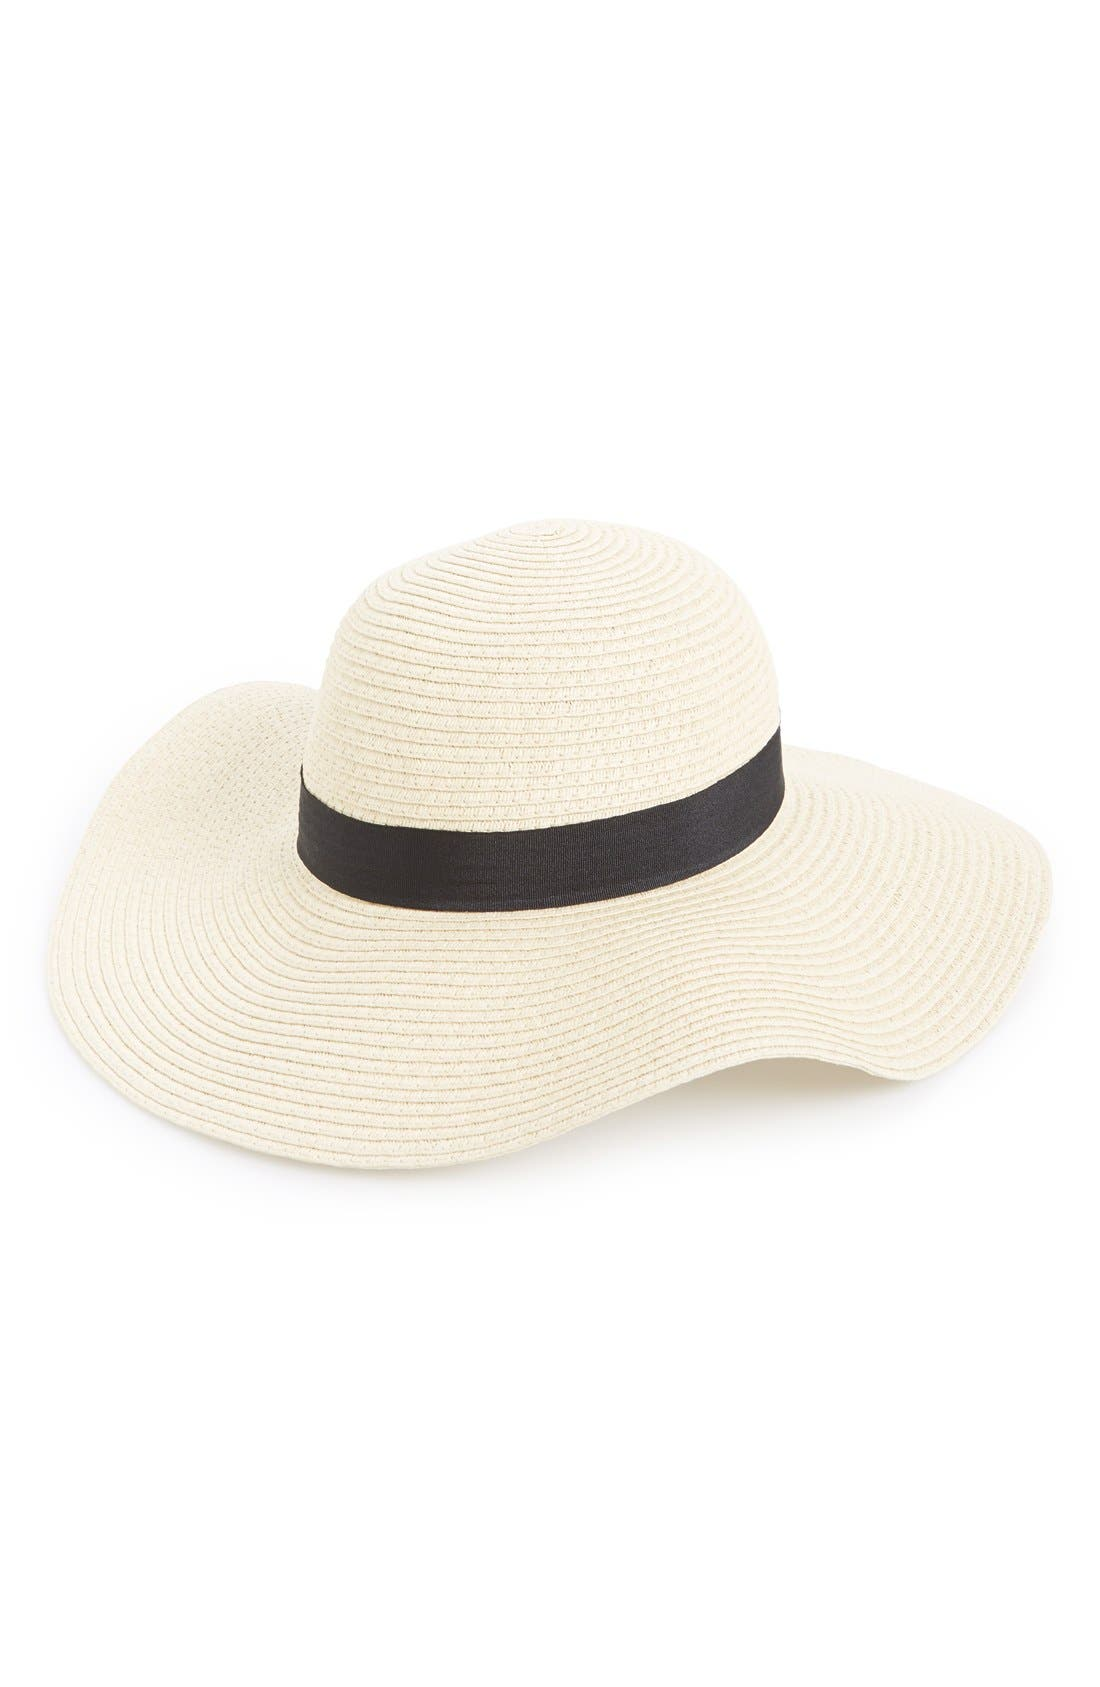 Alternate Image 1 Selected - Amici Accessories Floppy Straw Hat